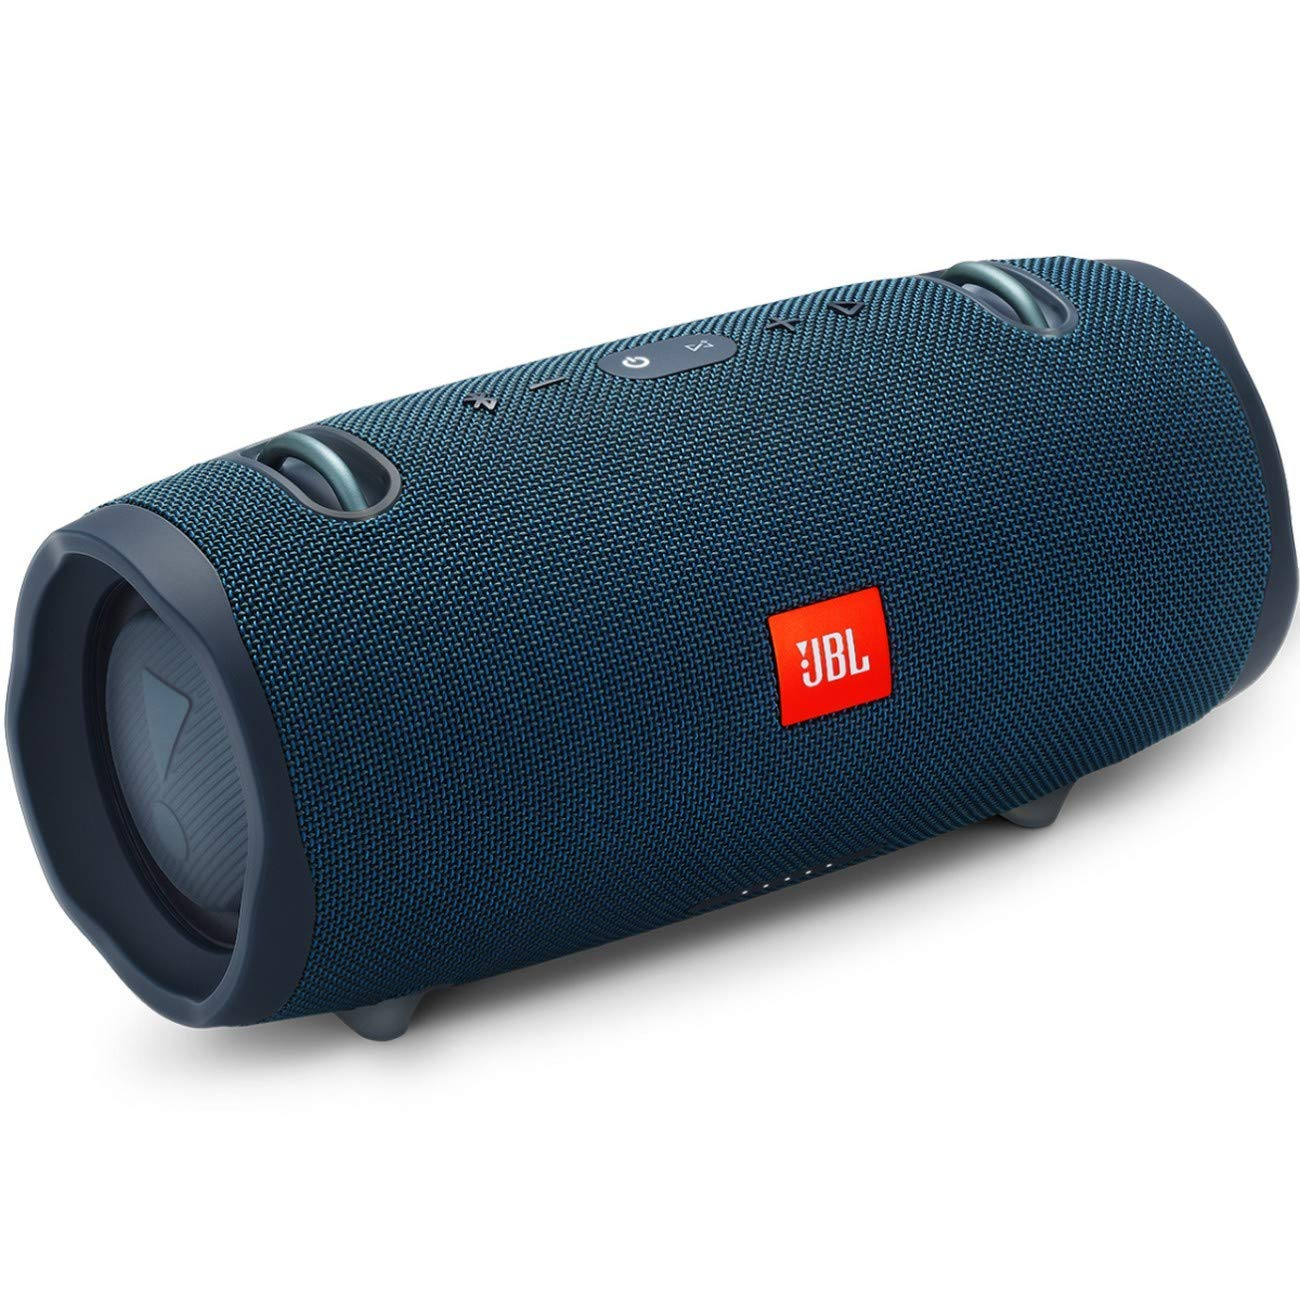 JBL Xtreme 2 Portable Waterproof Wireless Bluetooth Speaker - Blue - XTREME2-BLUE